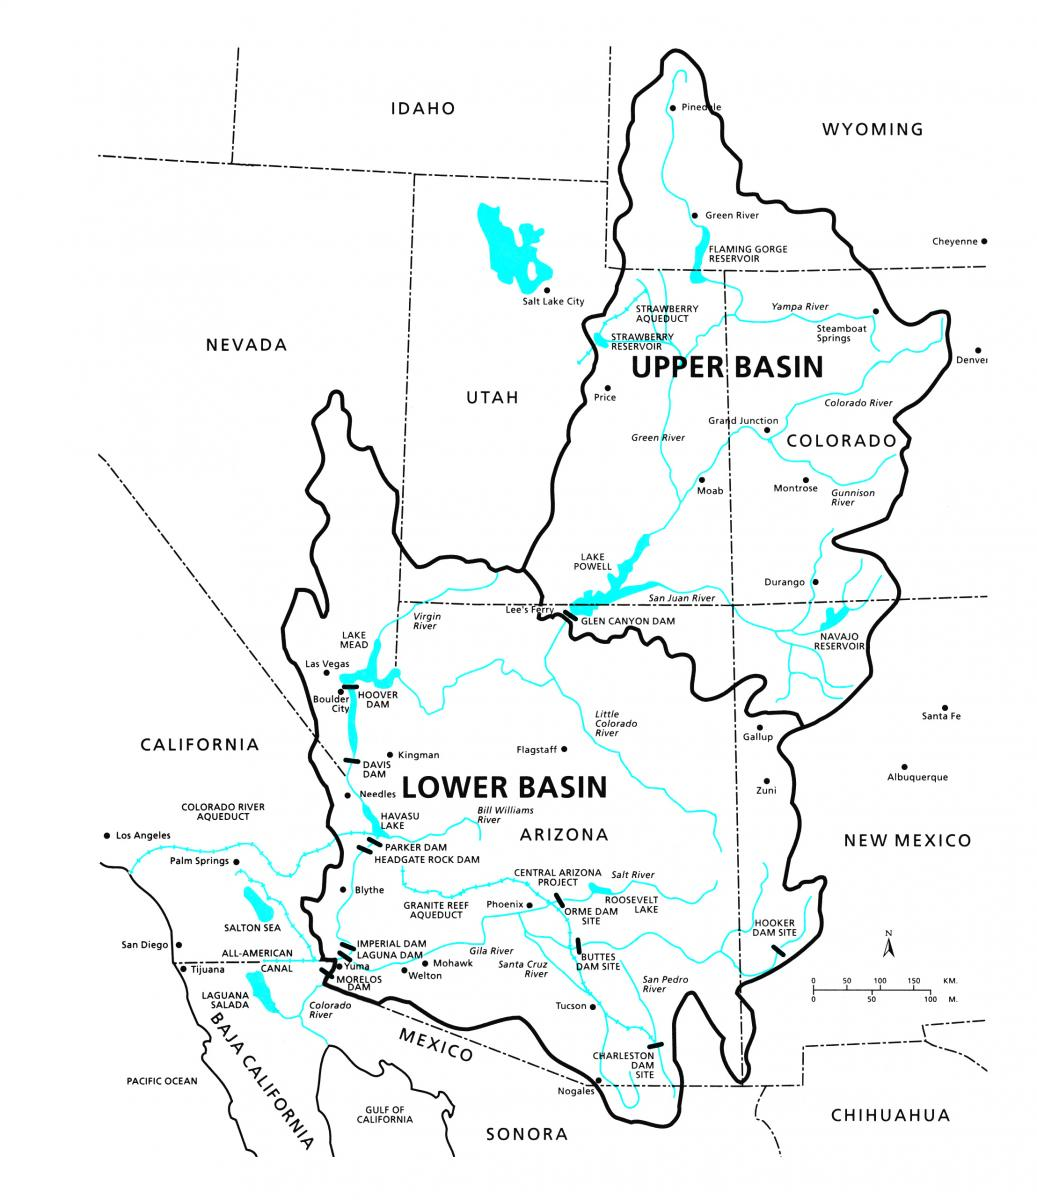 Map Of Colorado River In Arizona.As Colorado River Levels Drop Pressure Grows On Arizona To Complete